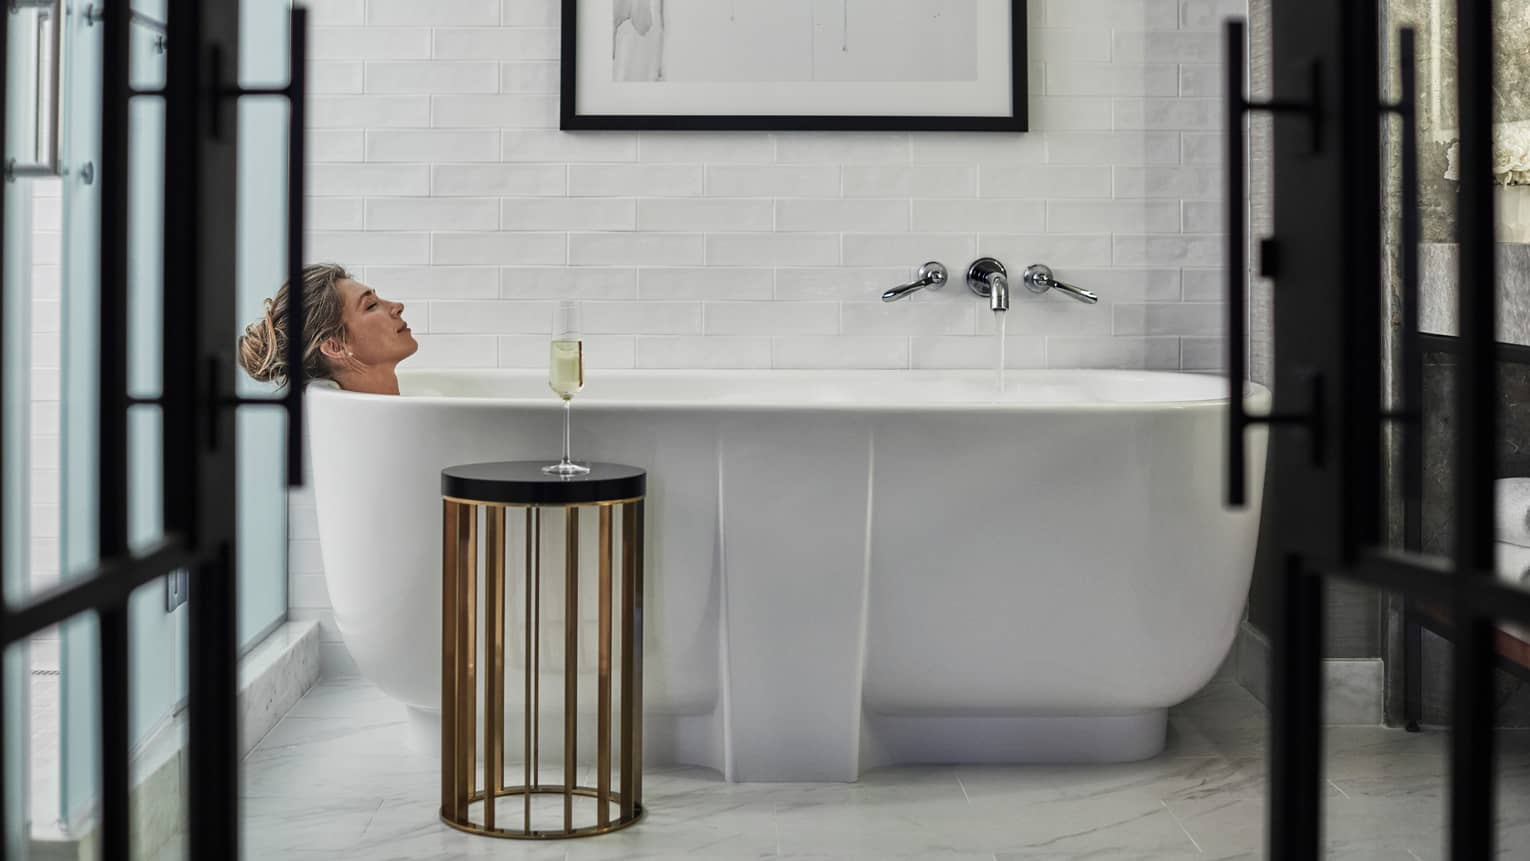 Woman leans back in large freestanding white tub, glass of white wine on stool